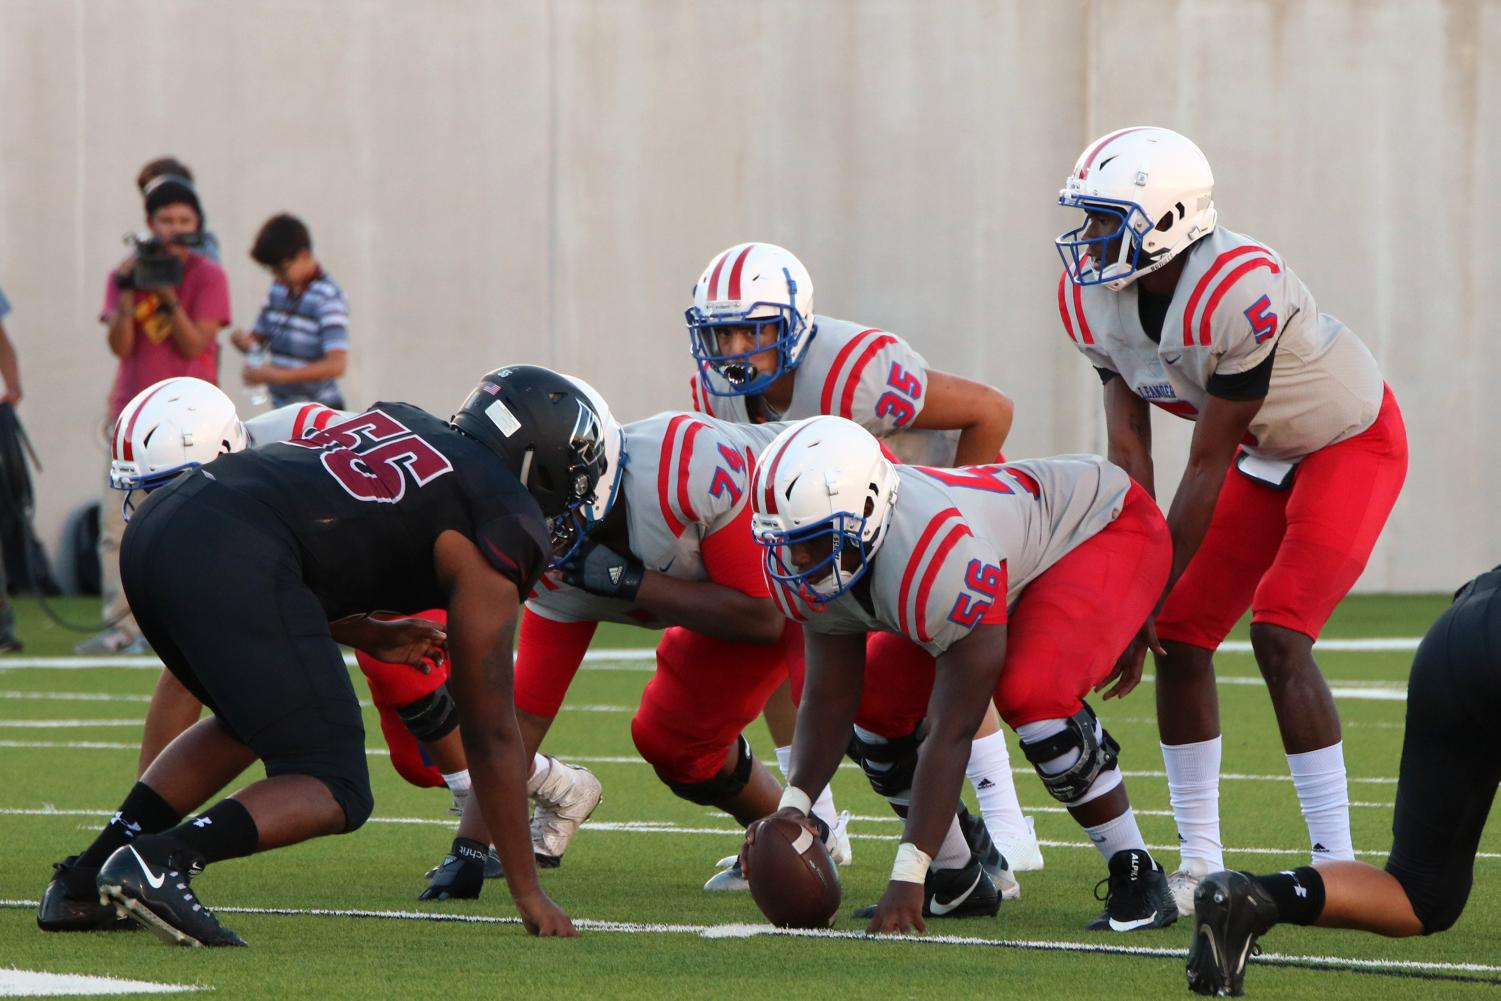 QB Rashad Carter (5) lined up behind center Eric Locust (56)